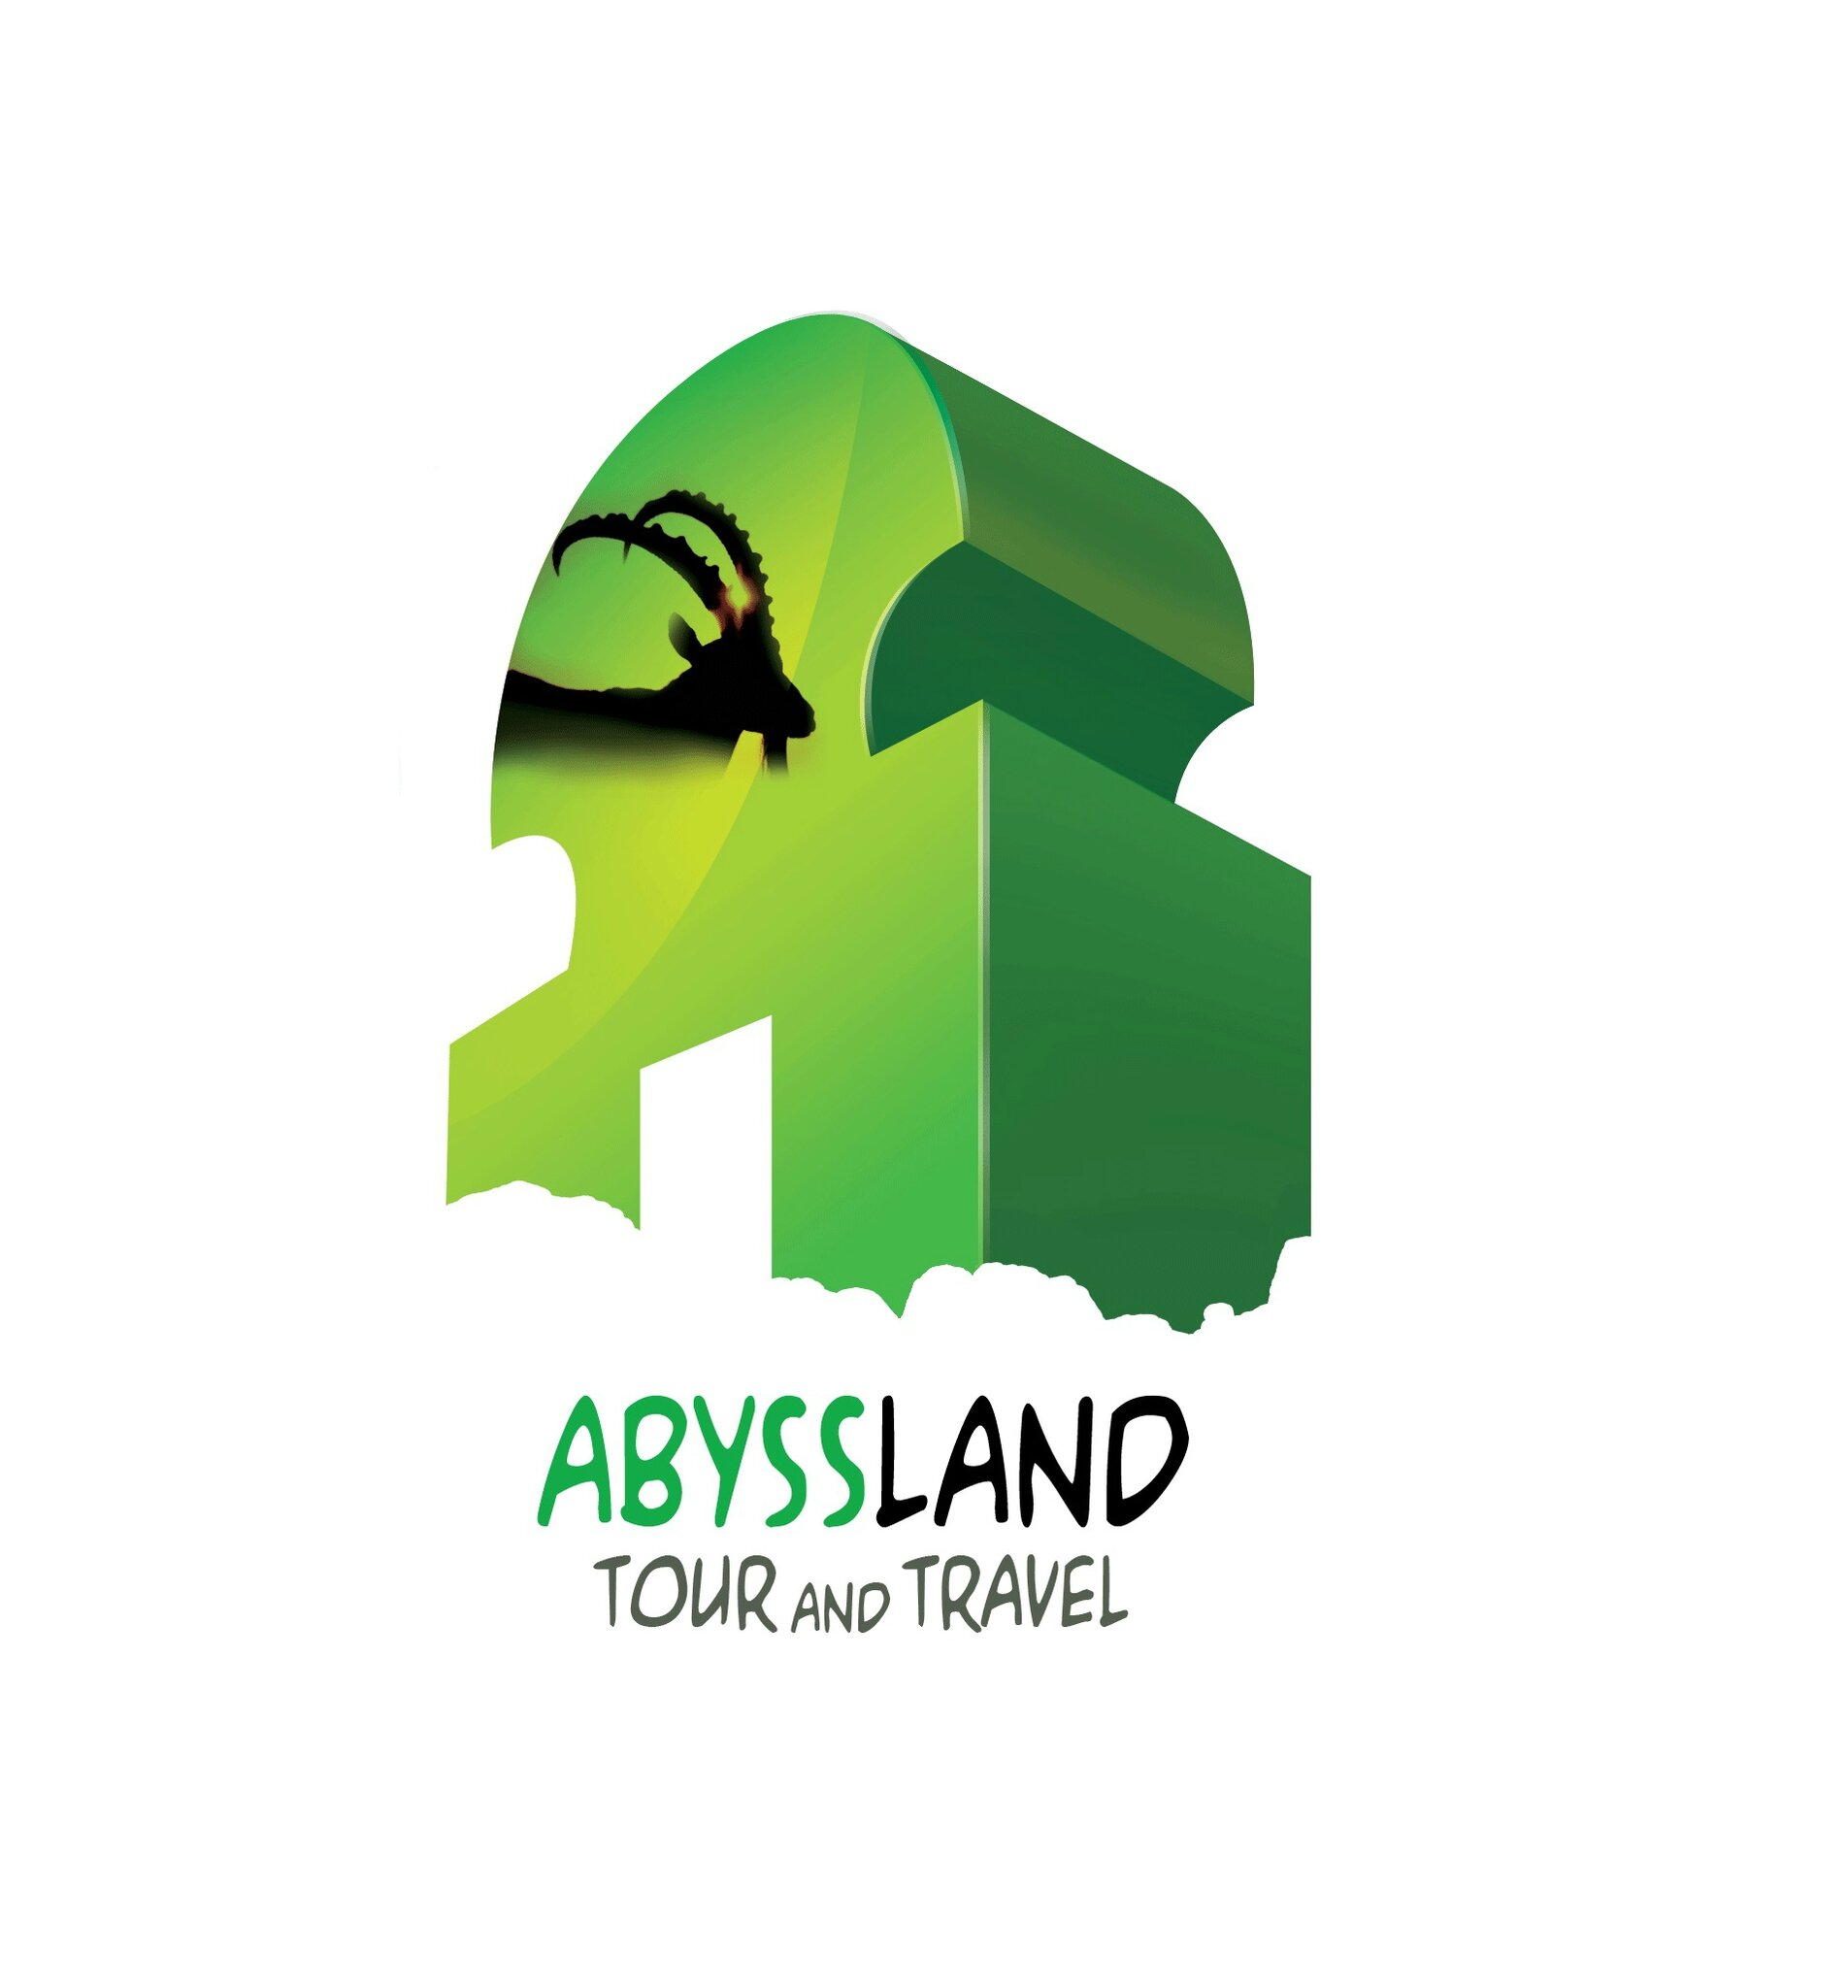 AbyssLandLogo_Green_Transparent